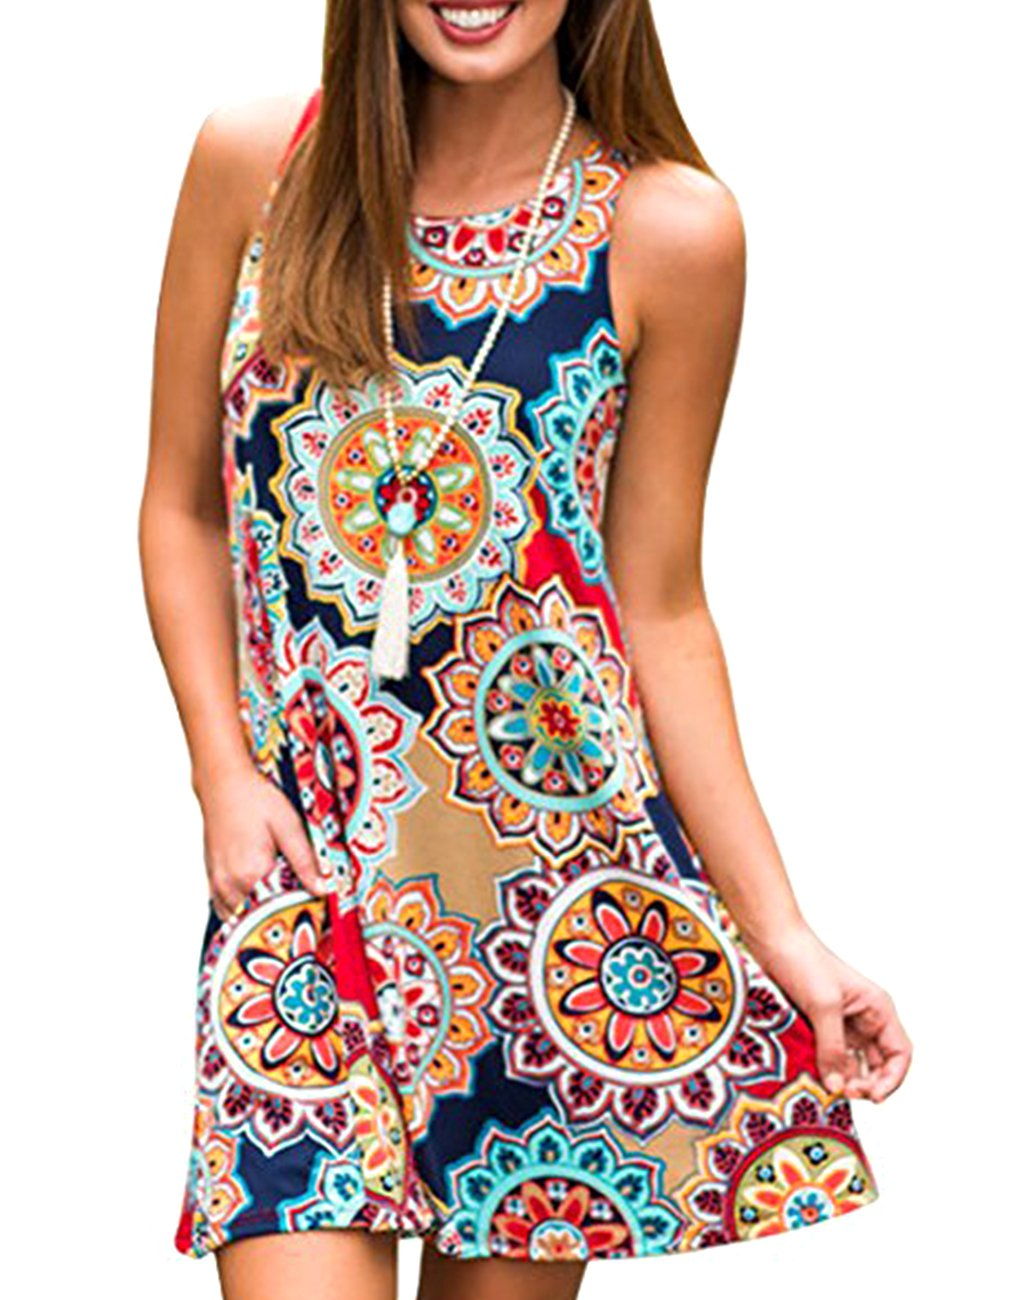 Women's Summer Sleeveless Damask Tunic Top Casual Floral Print T-Shirt Midi Dress with Pocket for Legging (Large, Geometric)